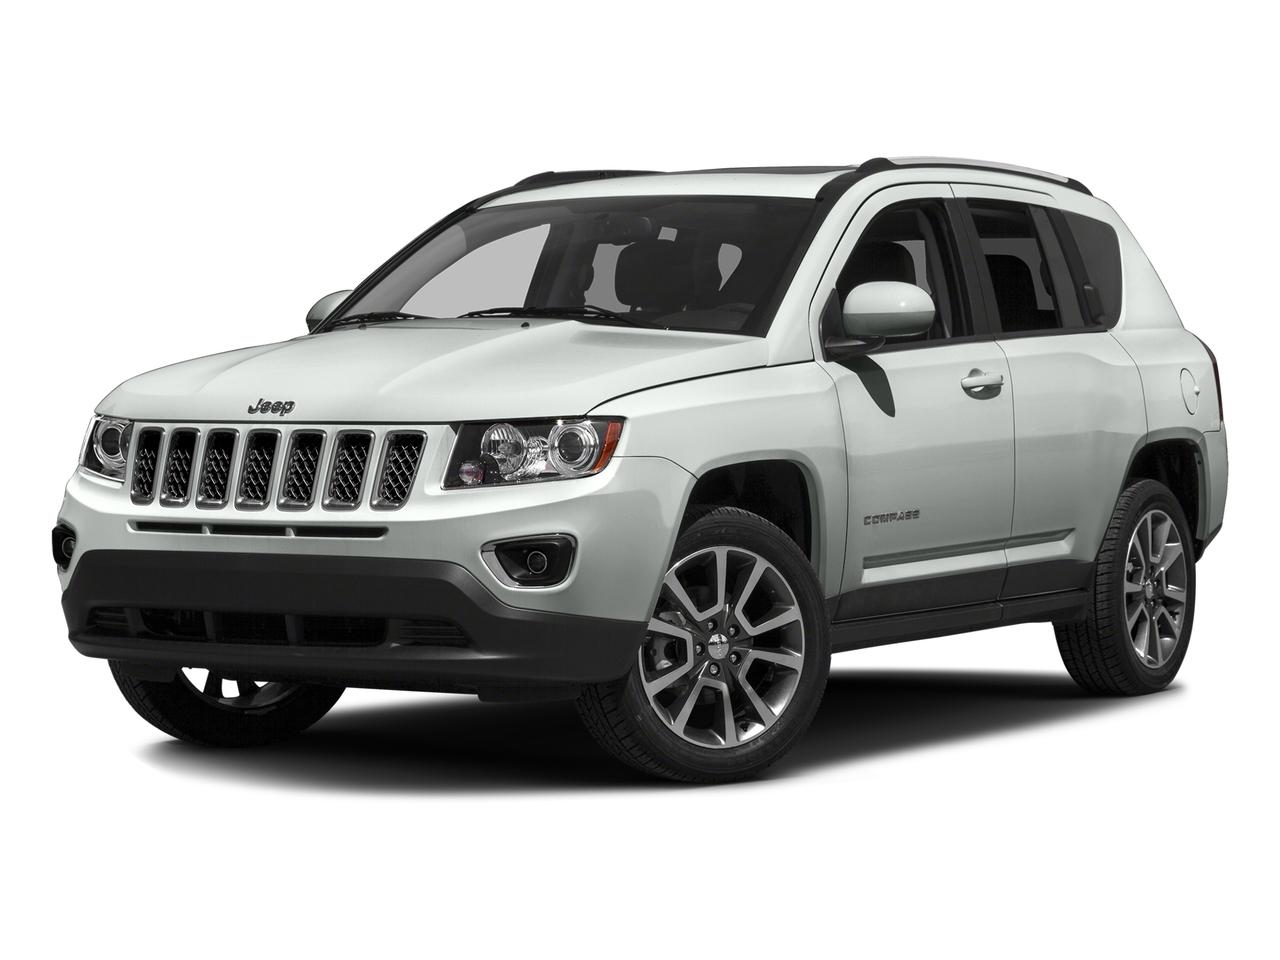 2016 Jeep Compass Vehicle Photo in CARLSBAD, CA 92008-4399